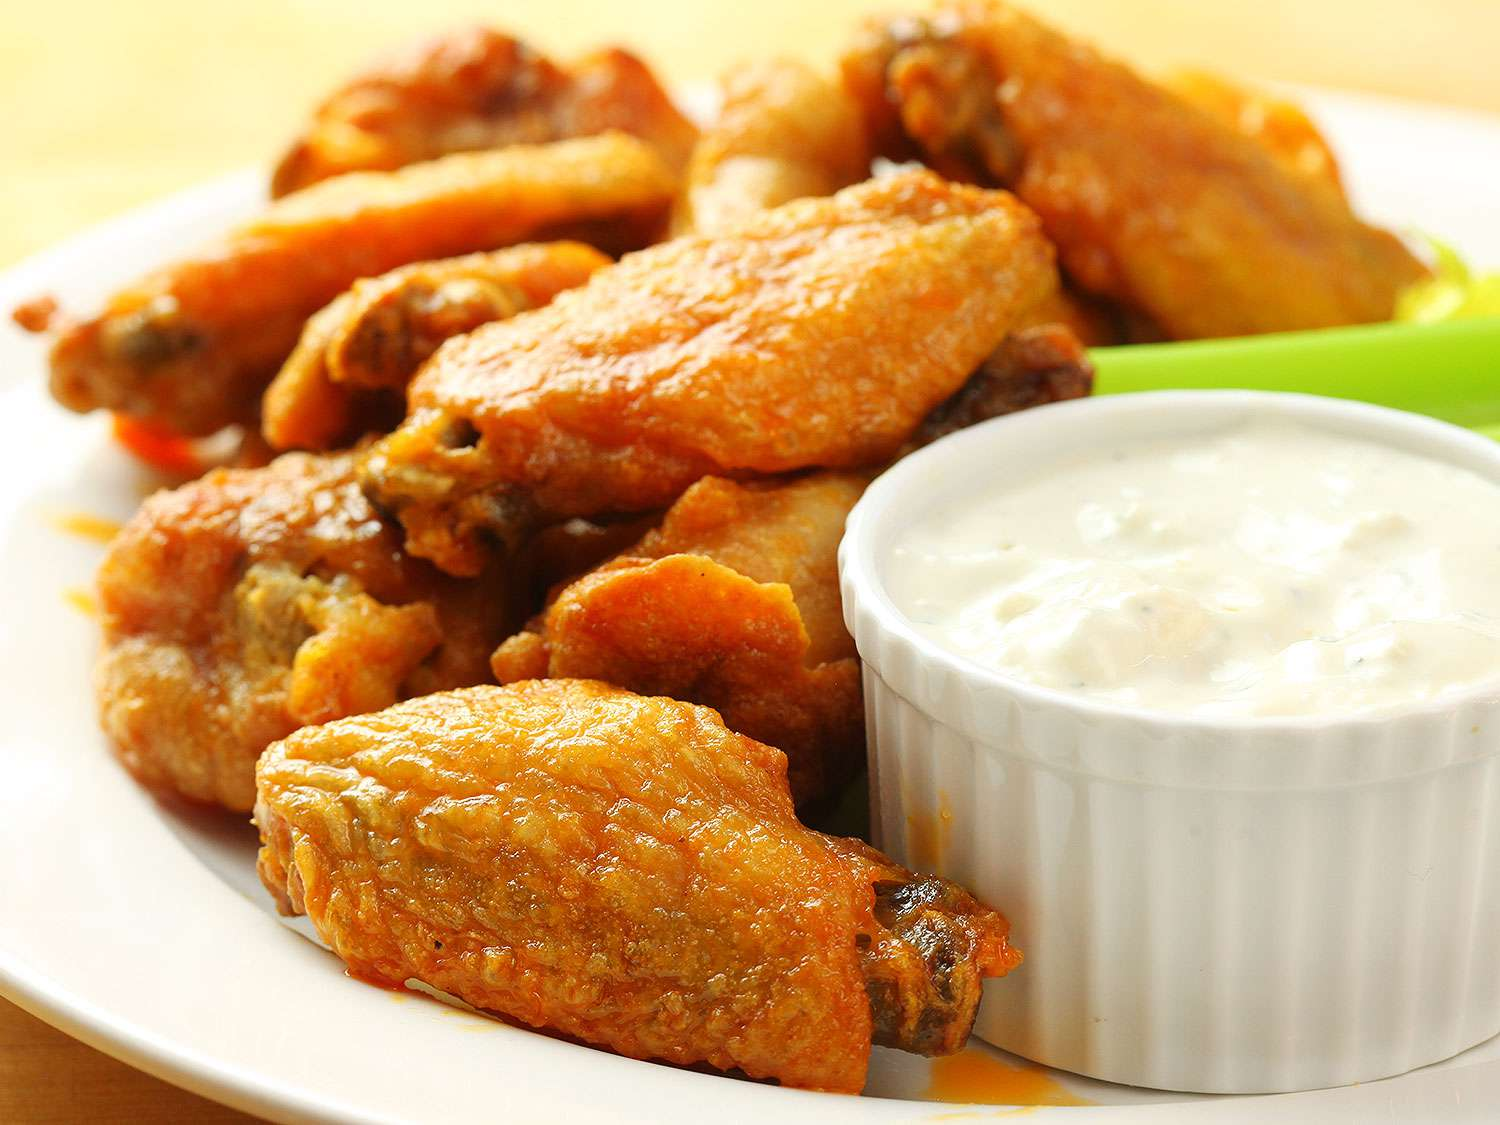 Baked buffalo wings with dipping sauce